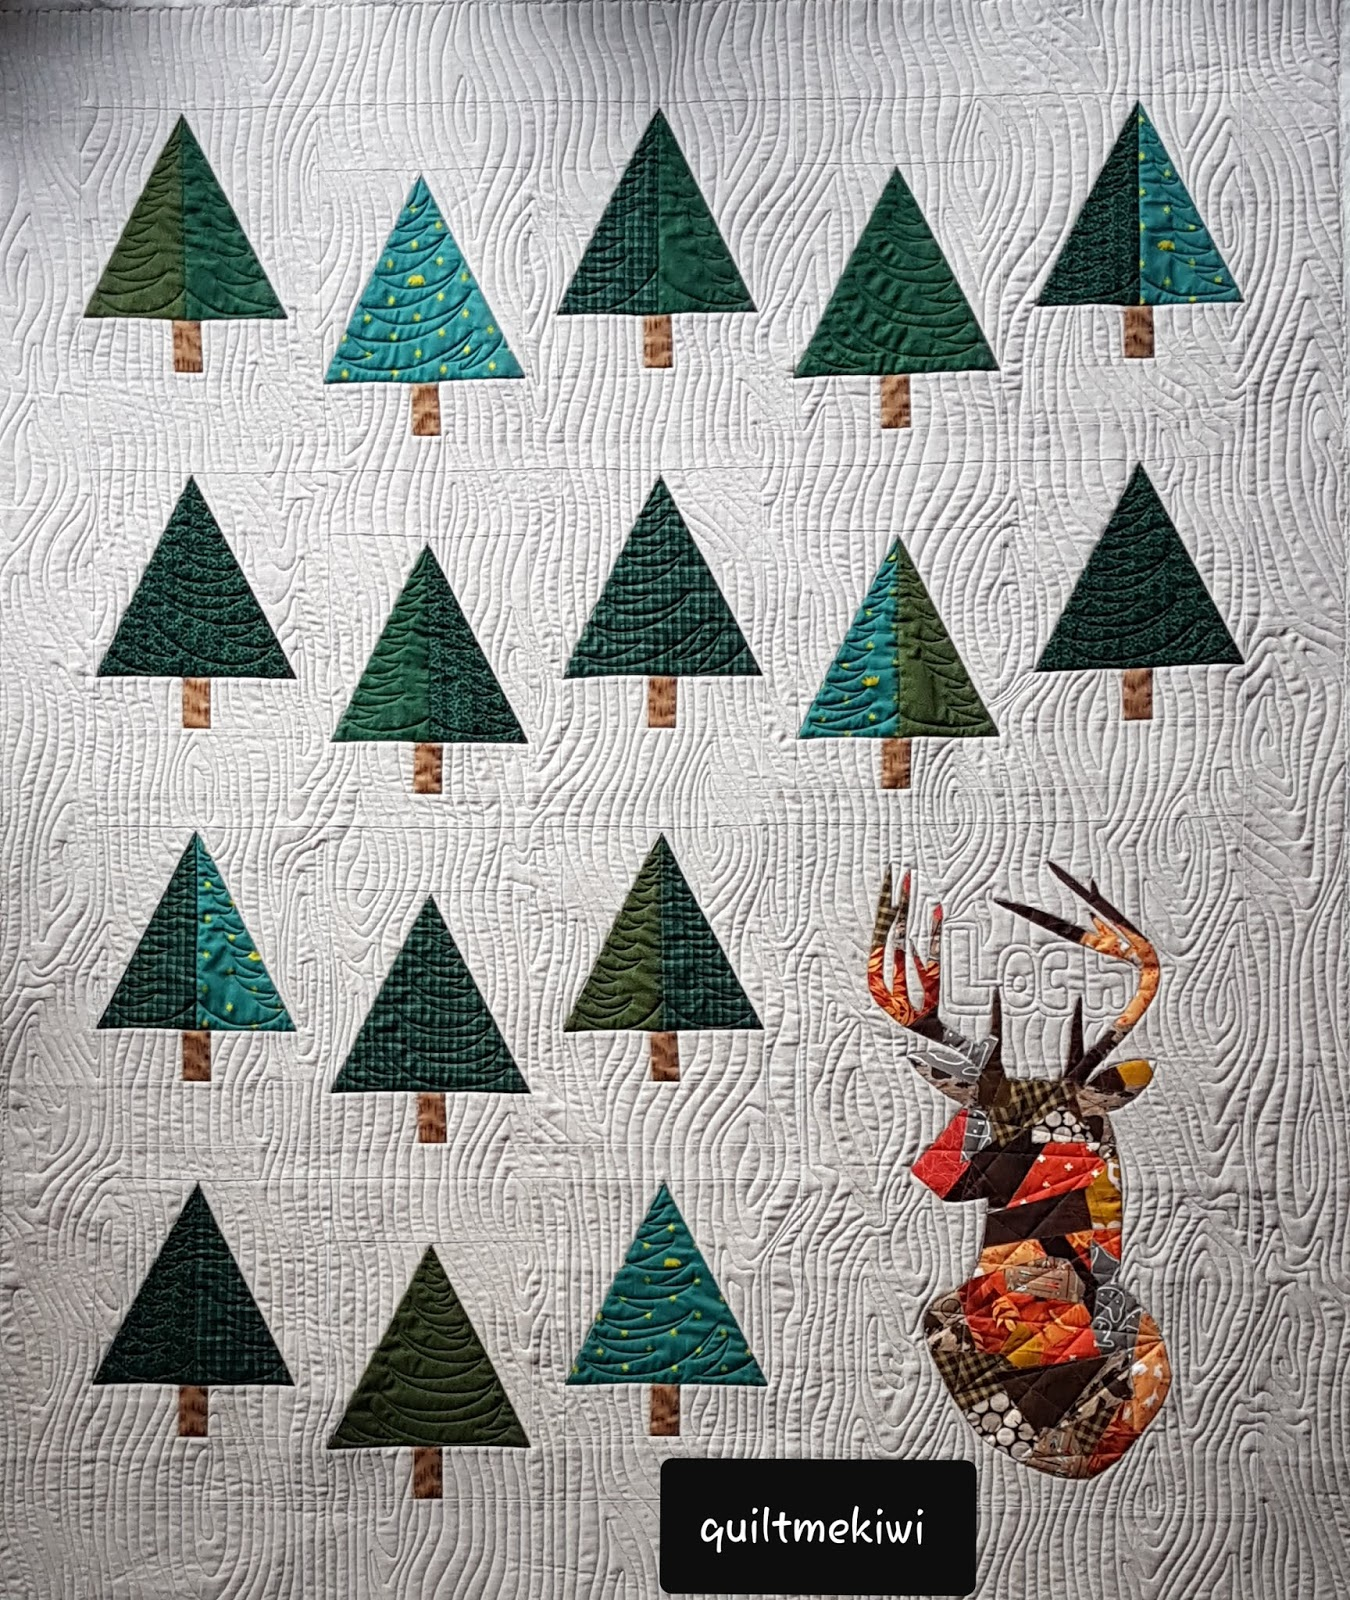 quiltmekiwi: Shannon and Marcelle\'s quilts